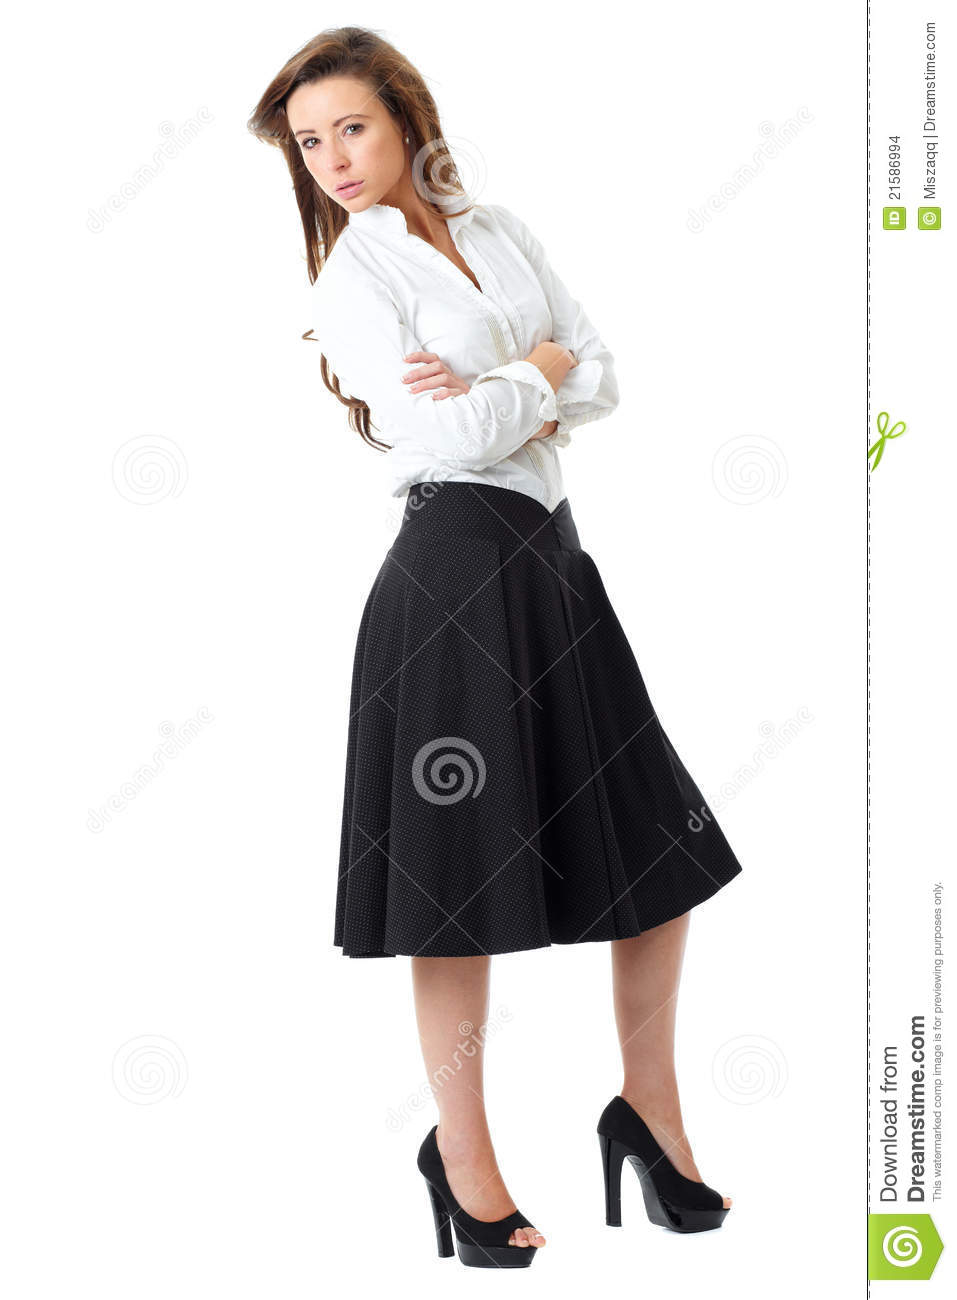 Attractive Female In White Shirt And Black Skirt Stock Photo - Image 21586994